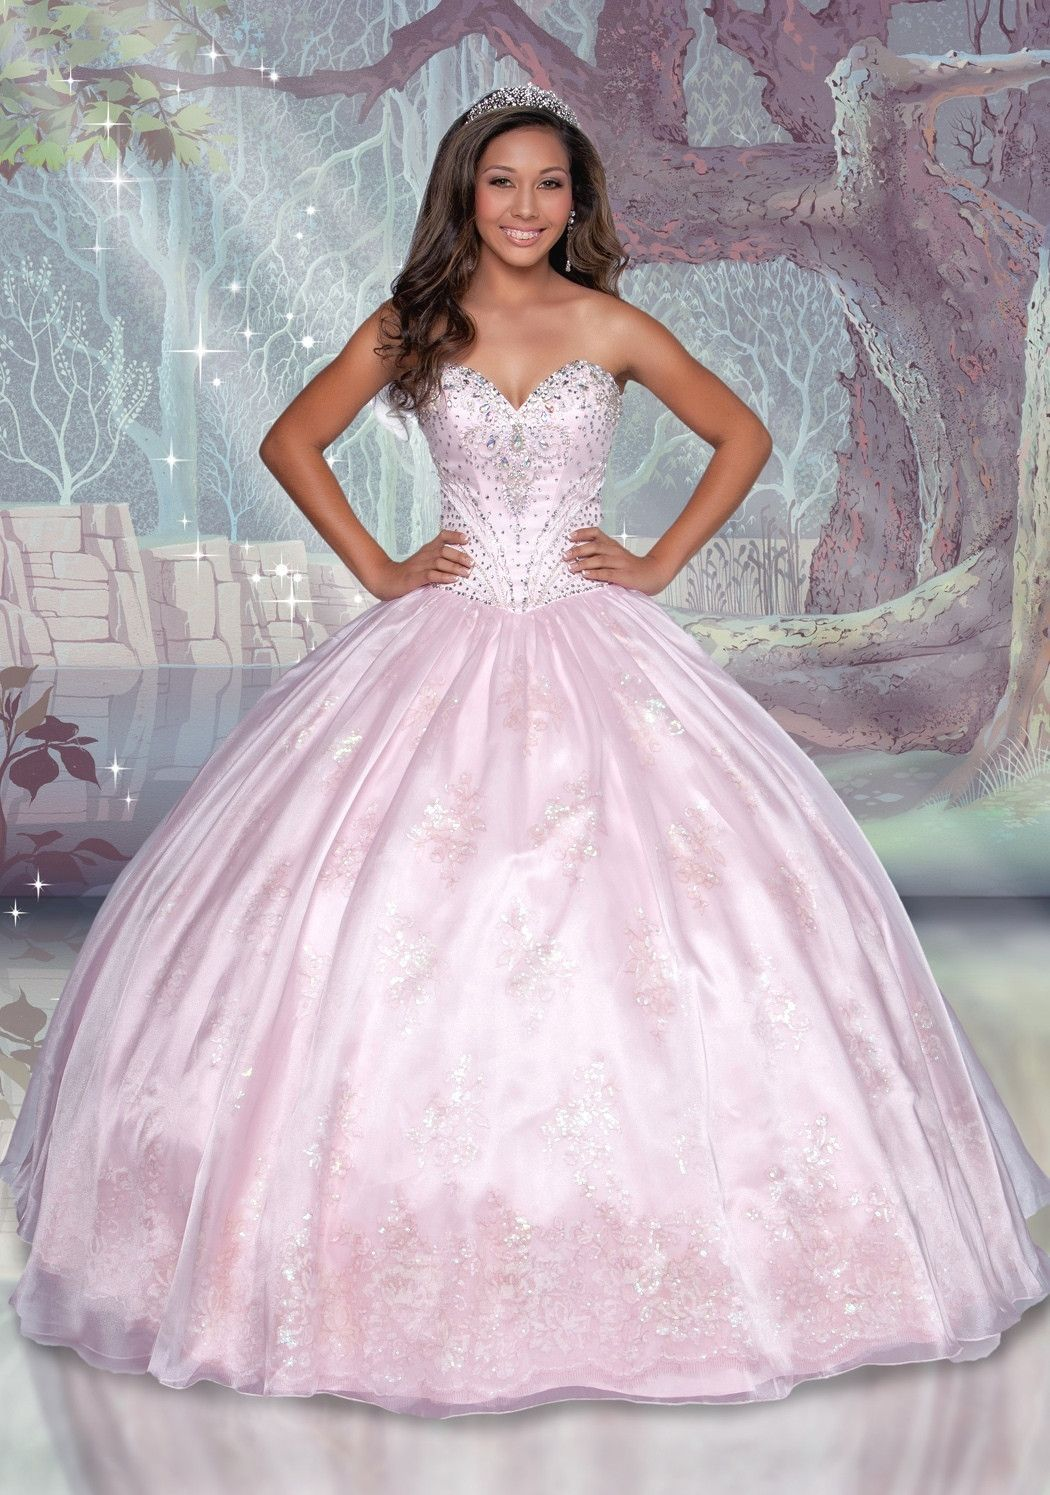 Disney Royal Ball Quinceanera Dress Sleeping Beauty Style 41100 | 15 ...